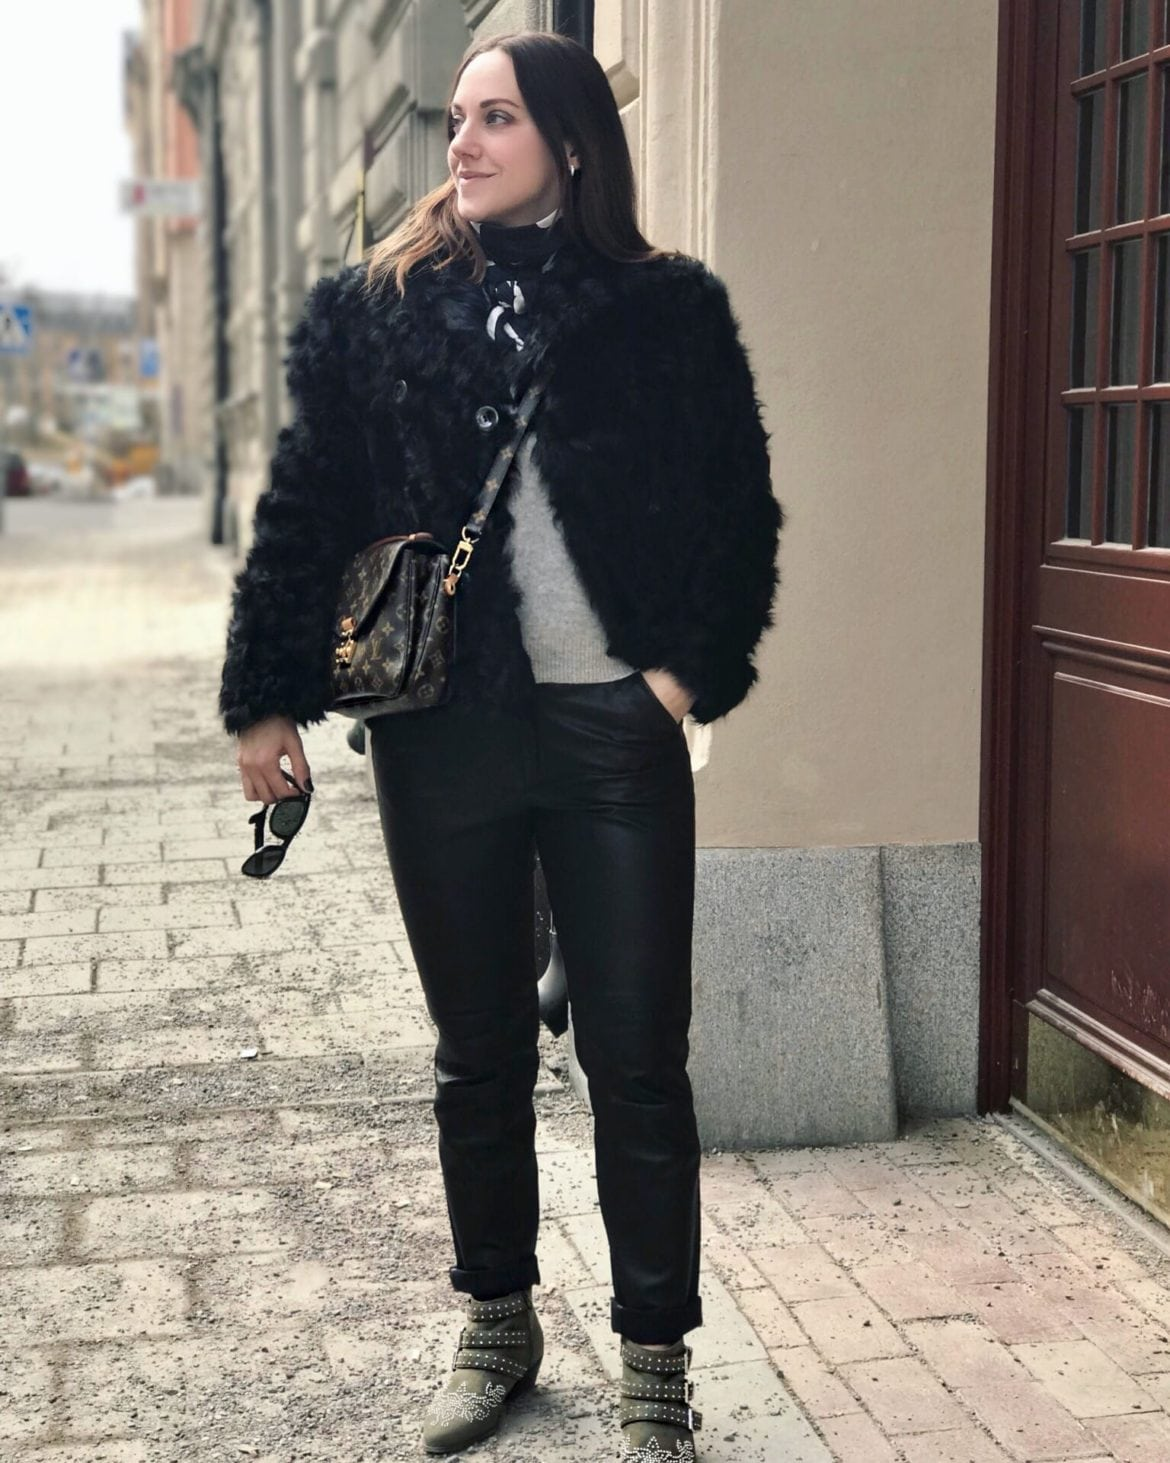 stockholm outfit